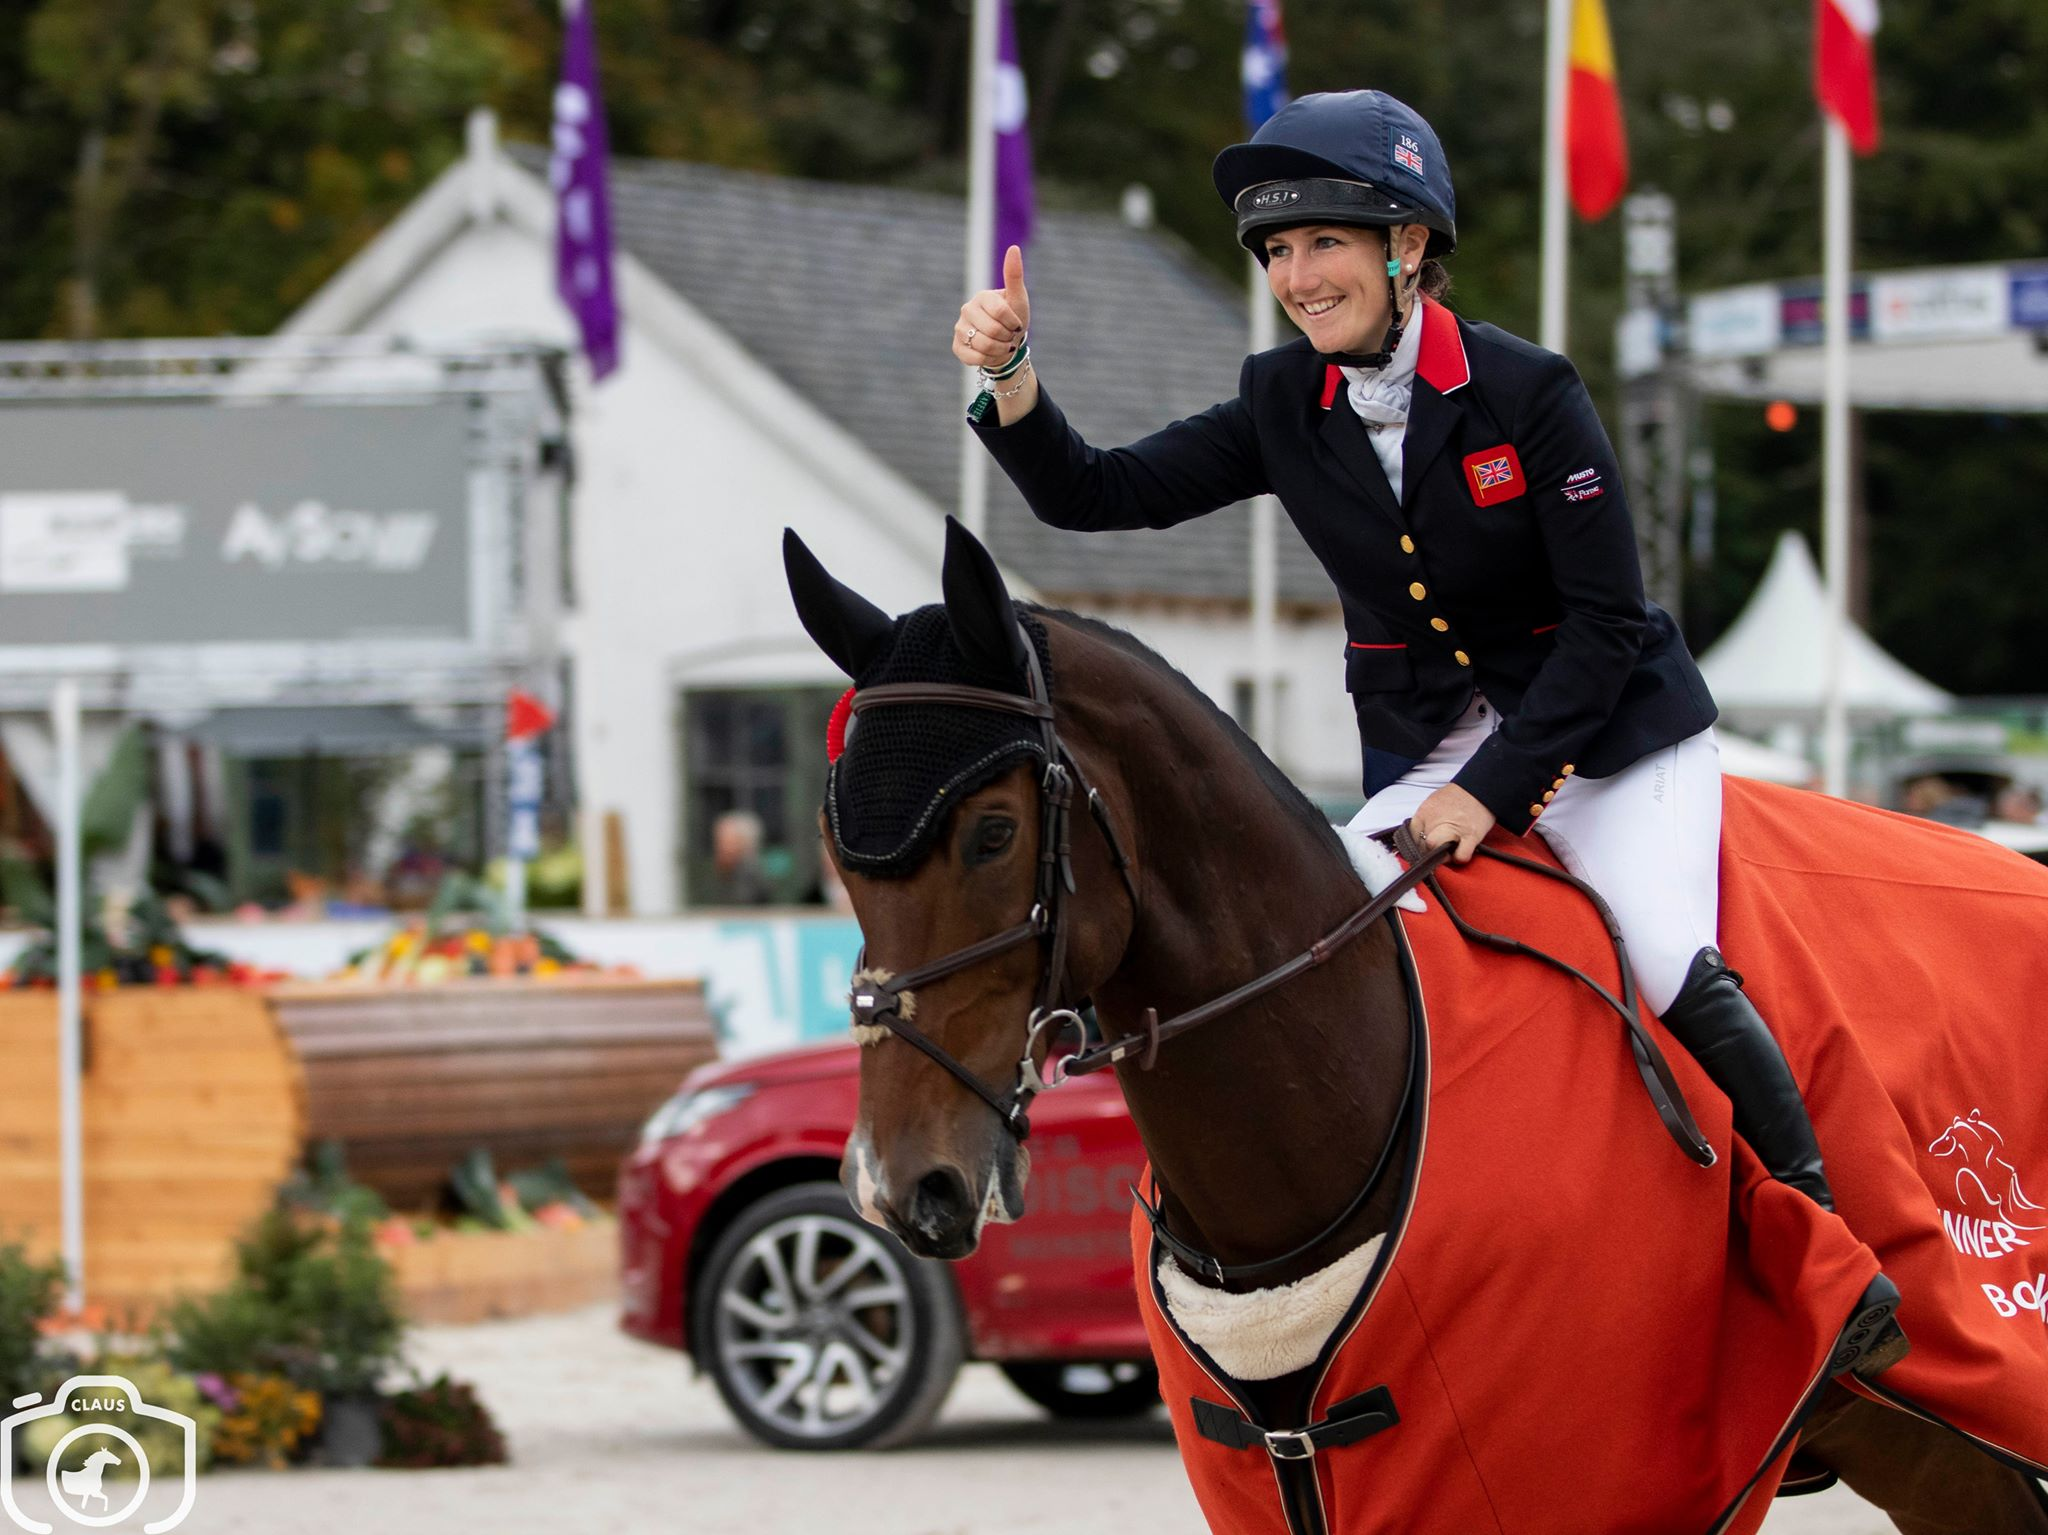 Germany claims NC title in Boekelo, last Tokyo 2020 ticket for Switzerland